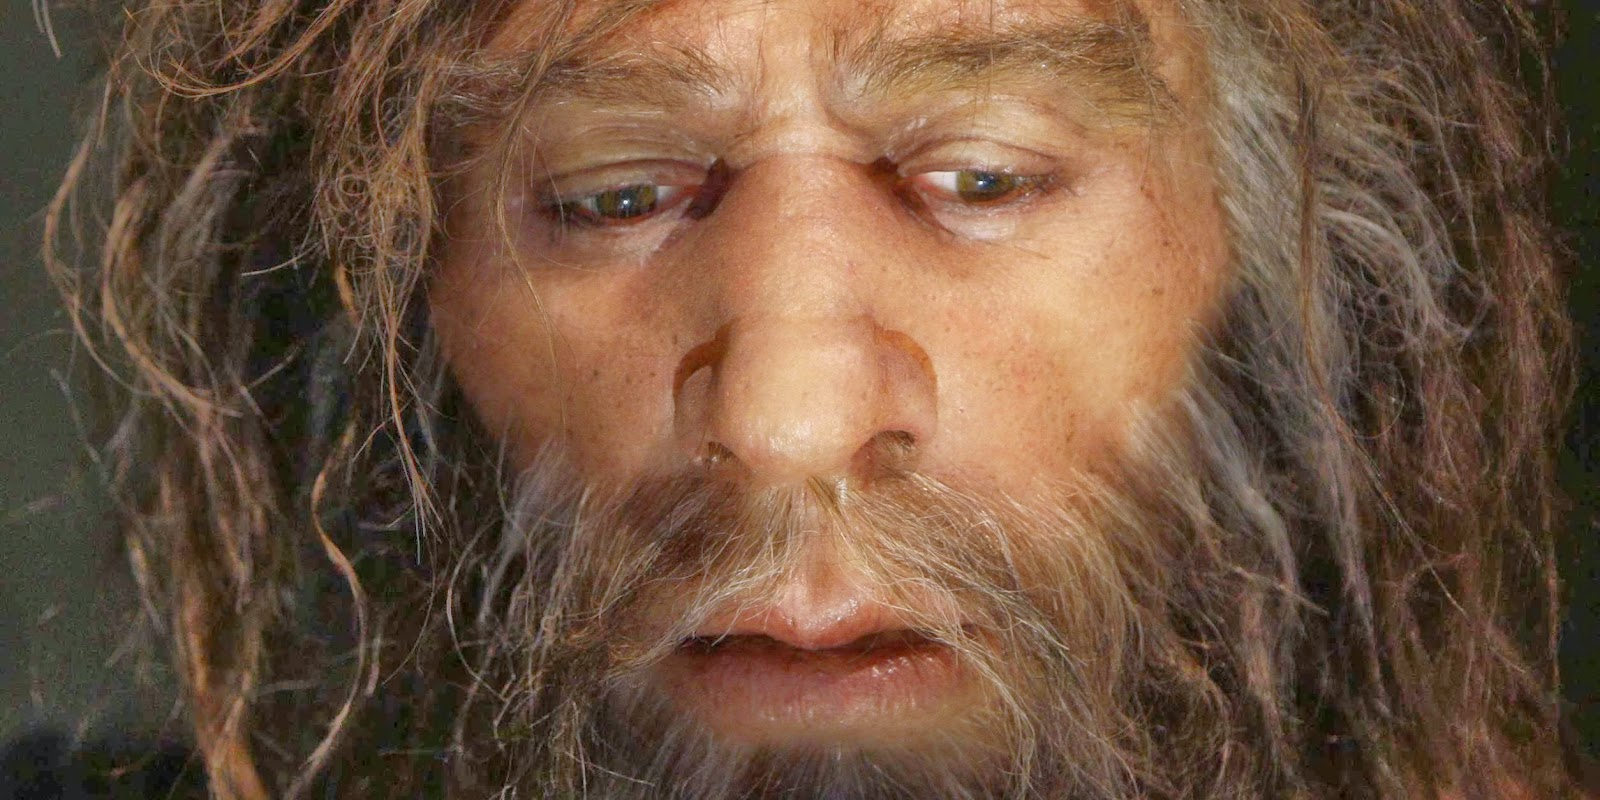 a history of the neanderthal species and the cause of extinction Some theories suggest neanderthals disappeared about 30,000 years ago because the species wasn't able to adapt to a cooling world as well as homo sapiens (see a prehistoric time line ) barton tells a different tale, suggesting that neanderthals reacted to the onset of the ice age the same ways modern humans did, by ranging farther for food and other resources.